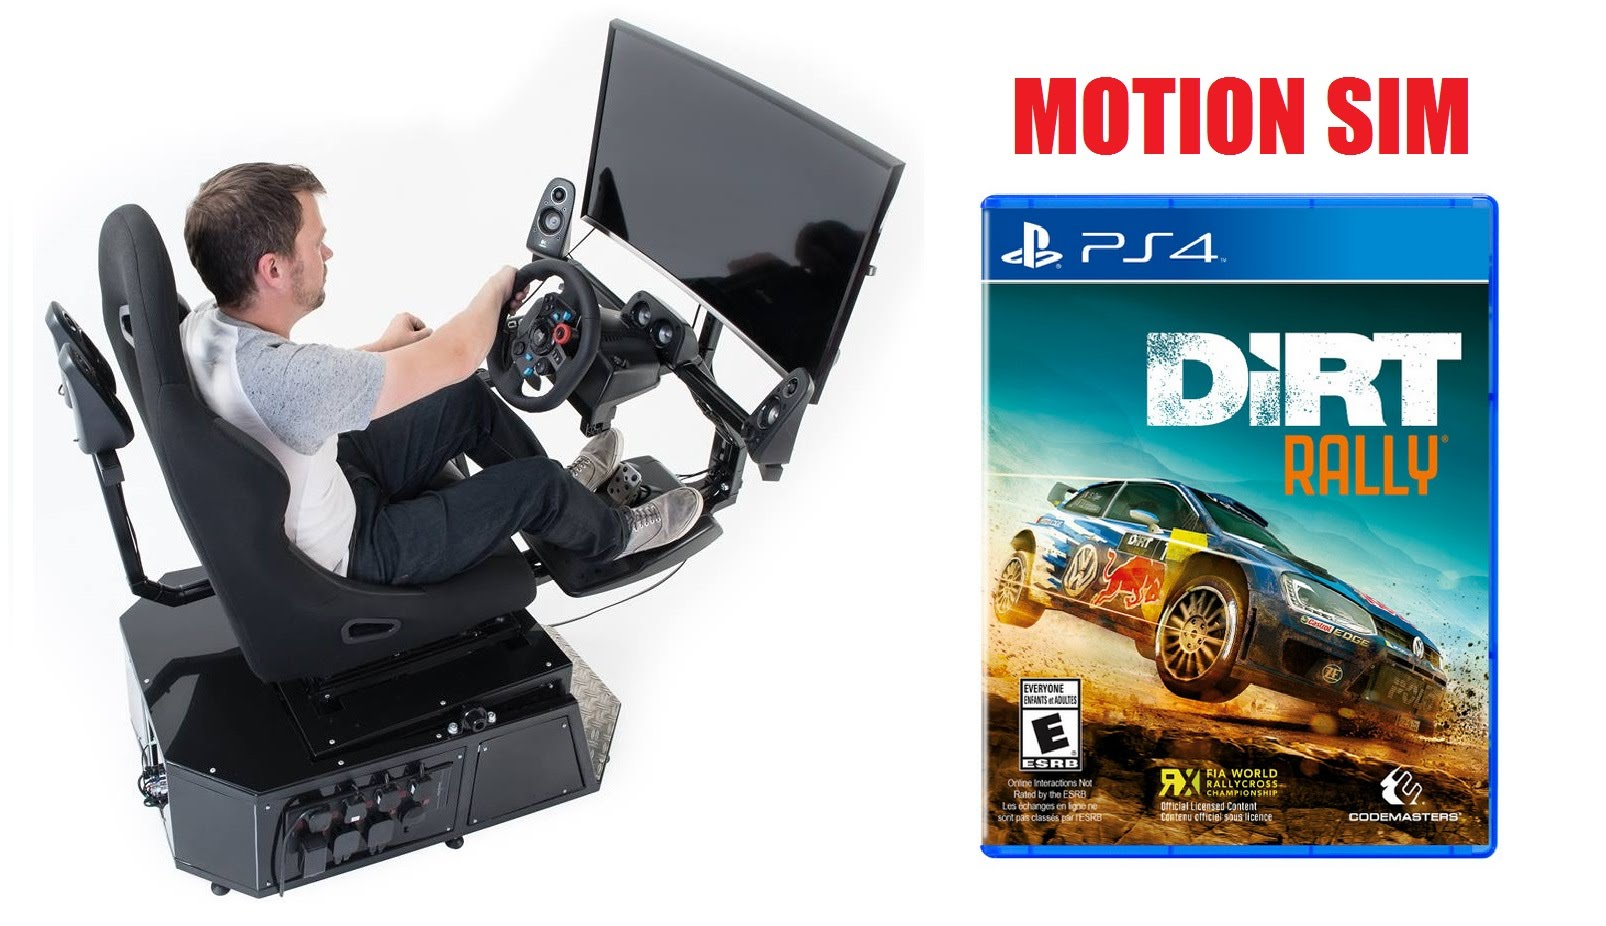 1606x926 Dirt Rally Ps4 Motion Simulator Vector Gt1 Mp